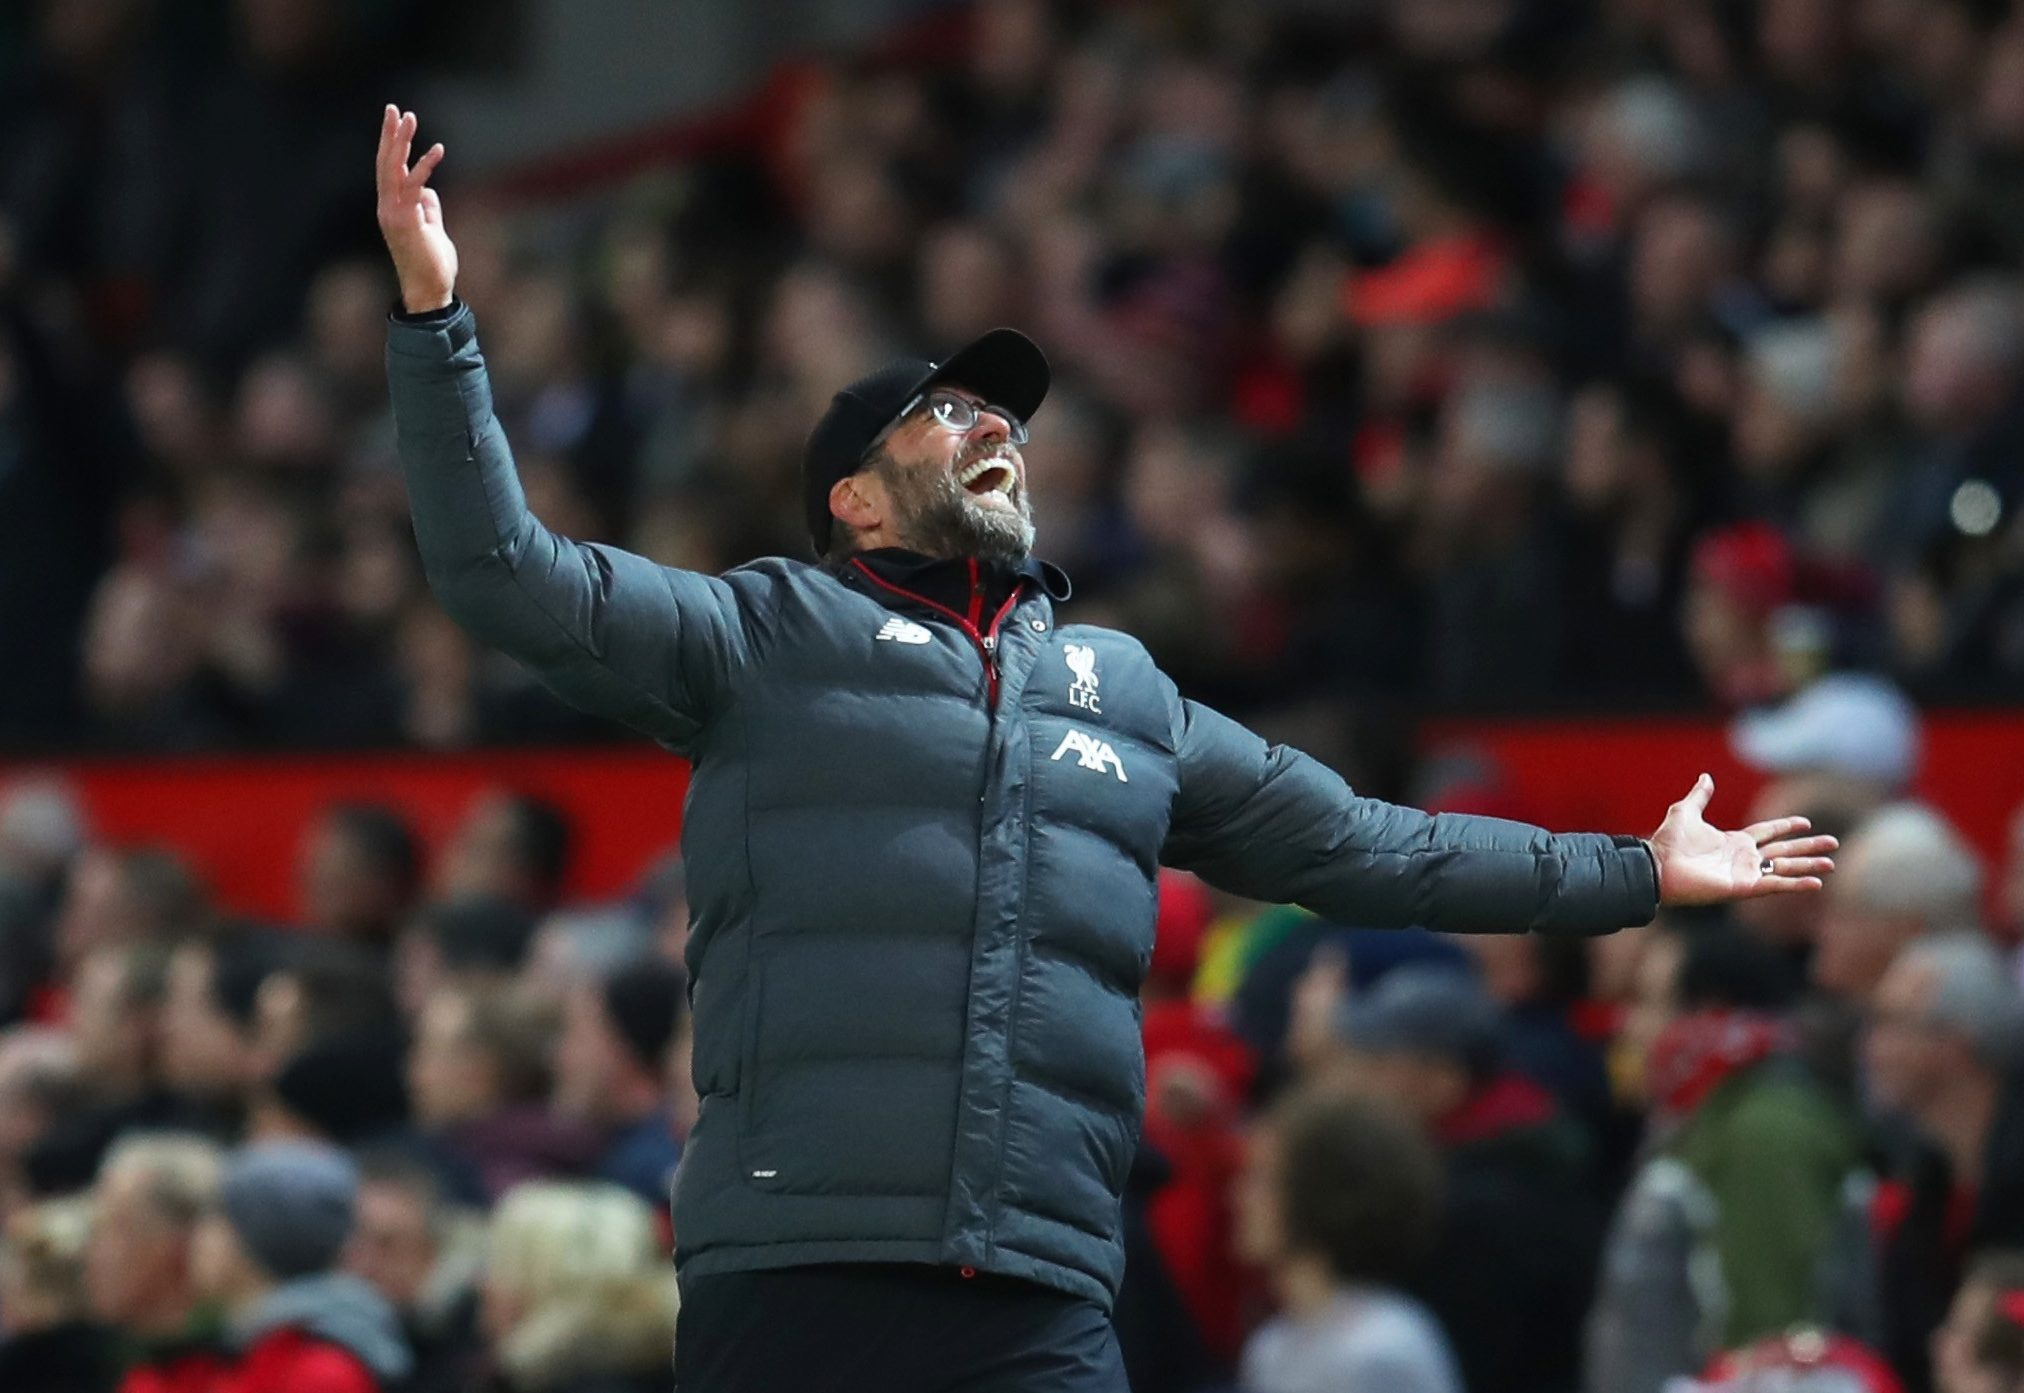 Klopp is not happy with Liverpool's fixture situation that will see them play two games in two days on two different continents